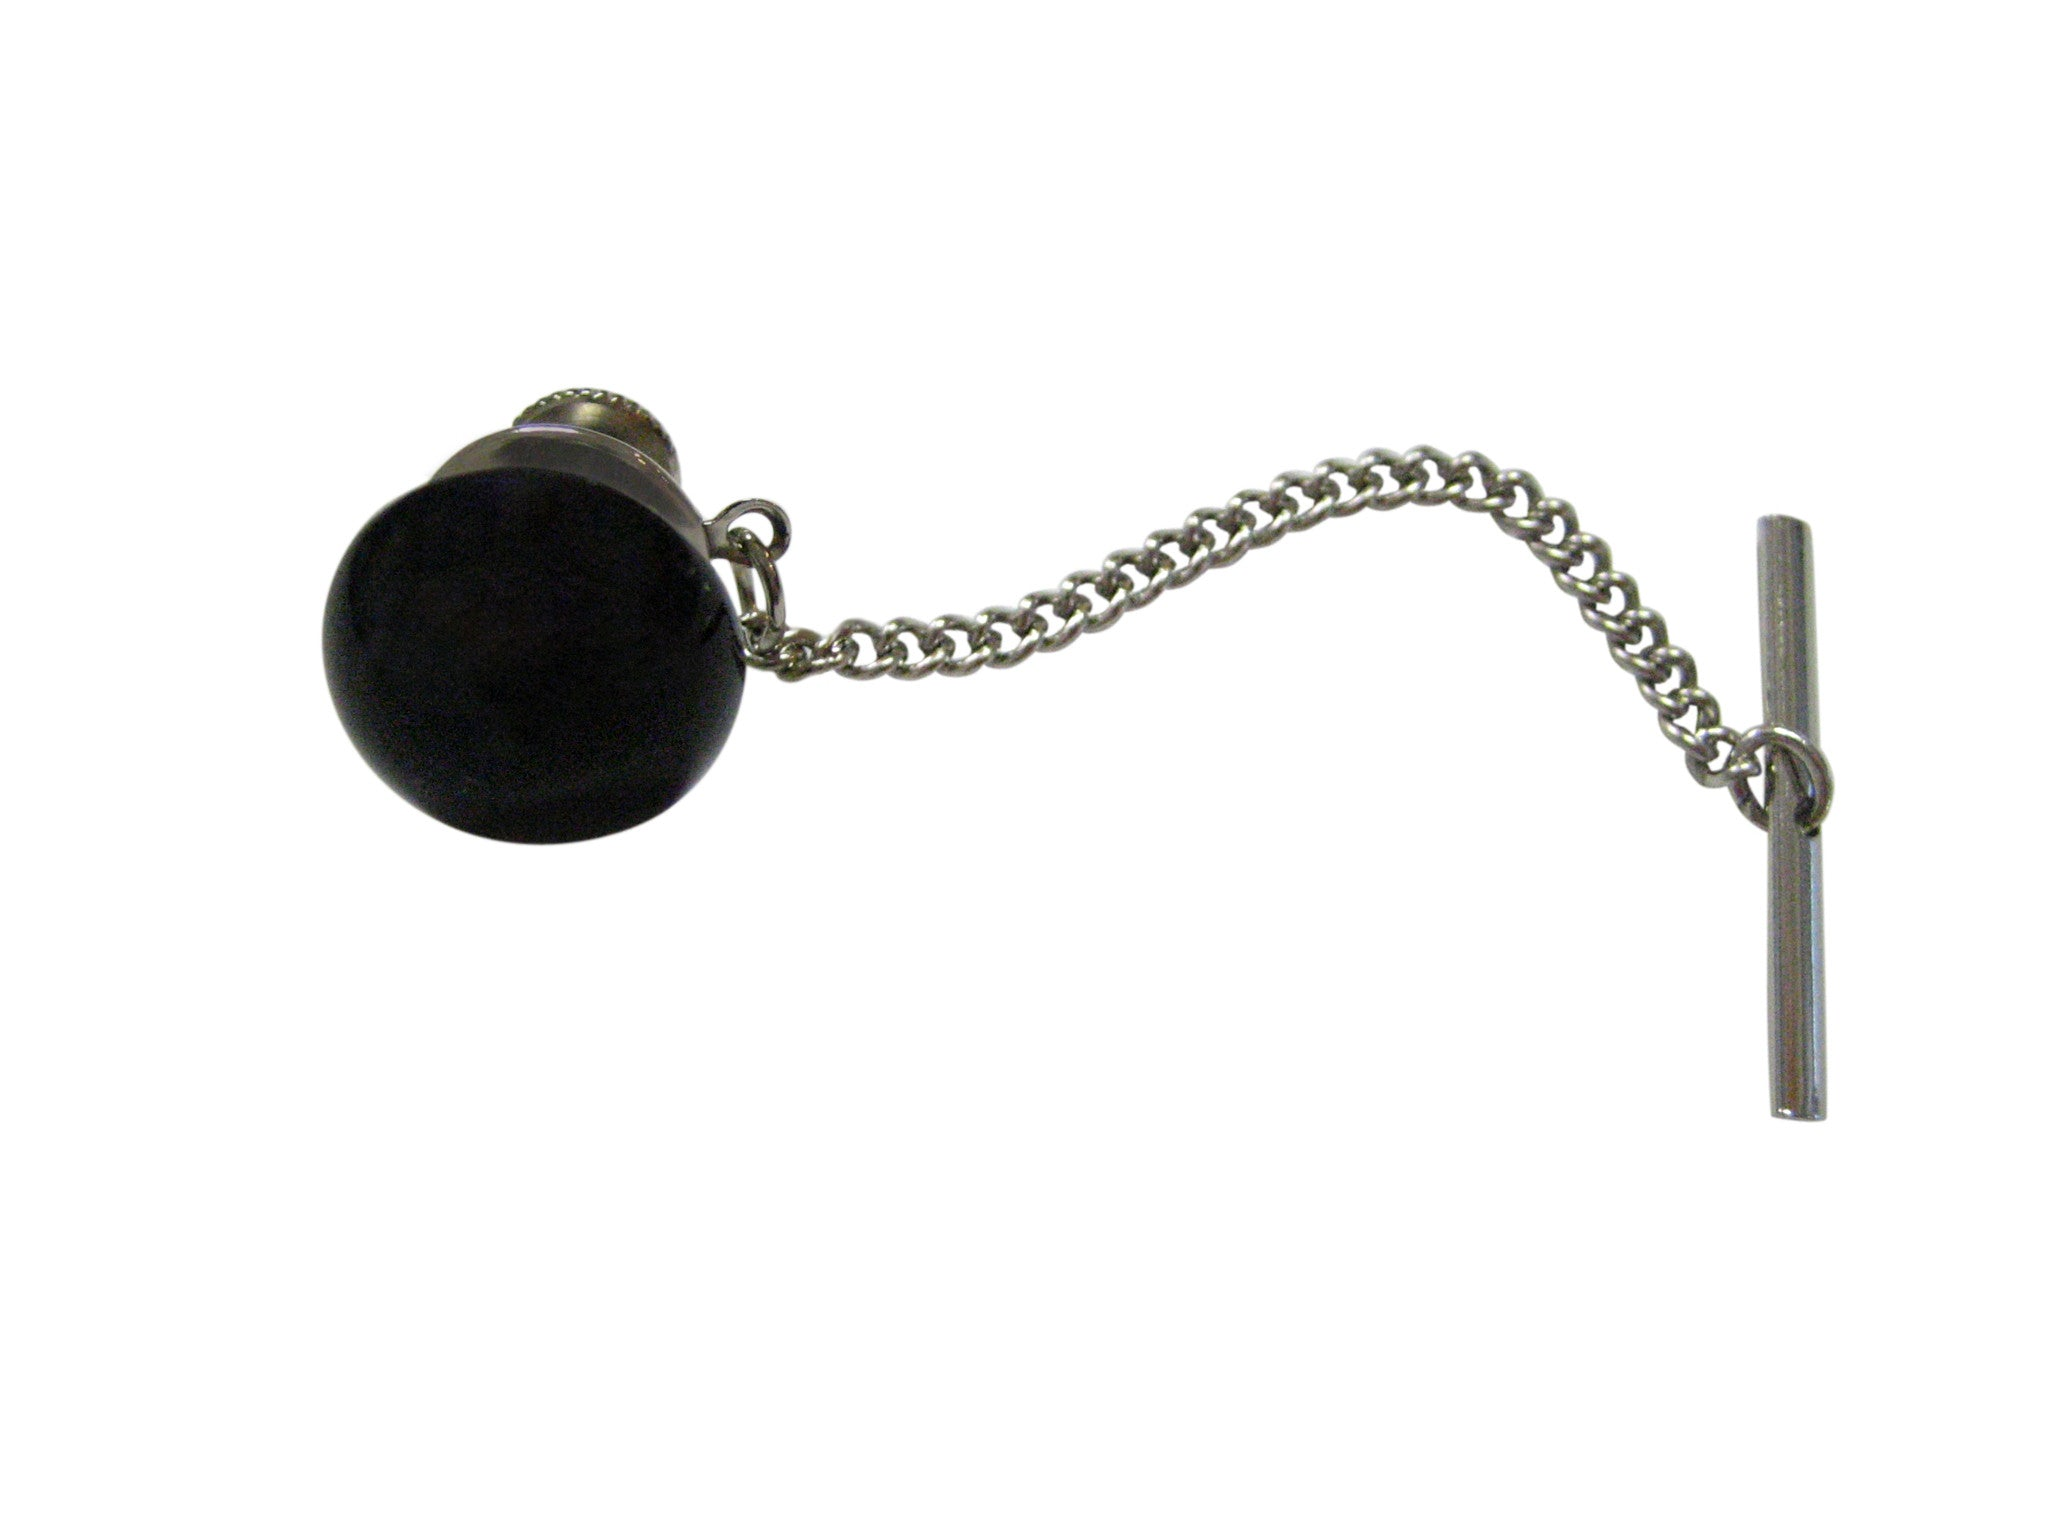 Black Onyx Gemstone Tie Tack